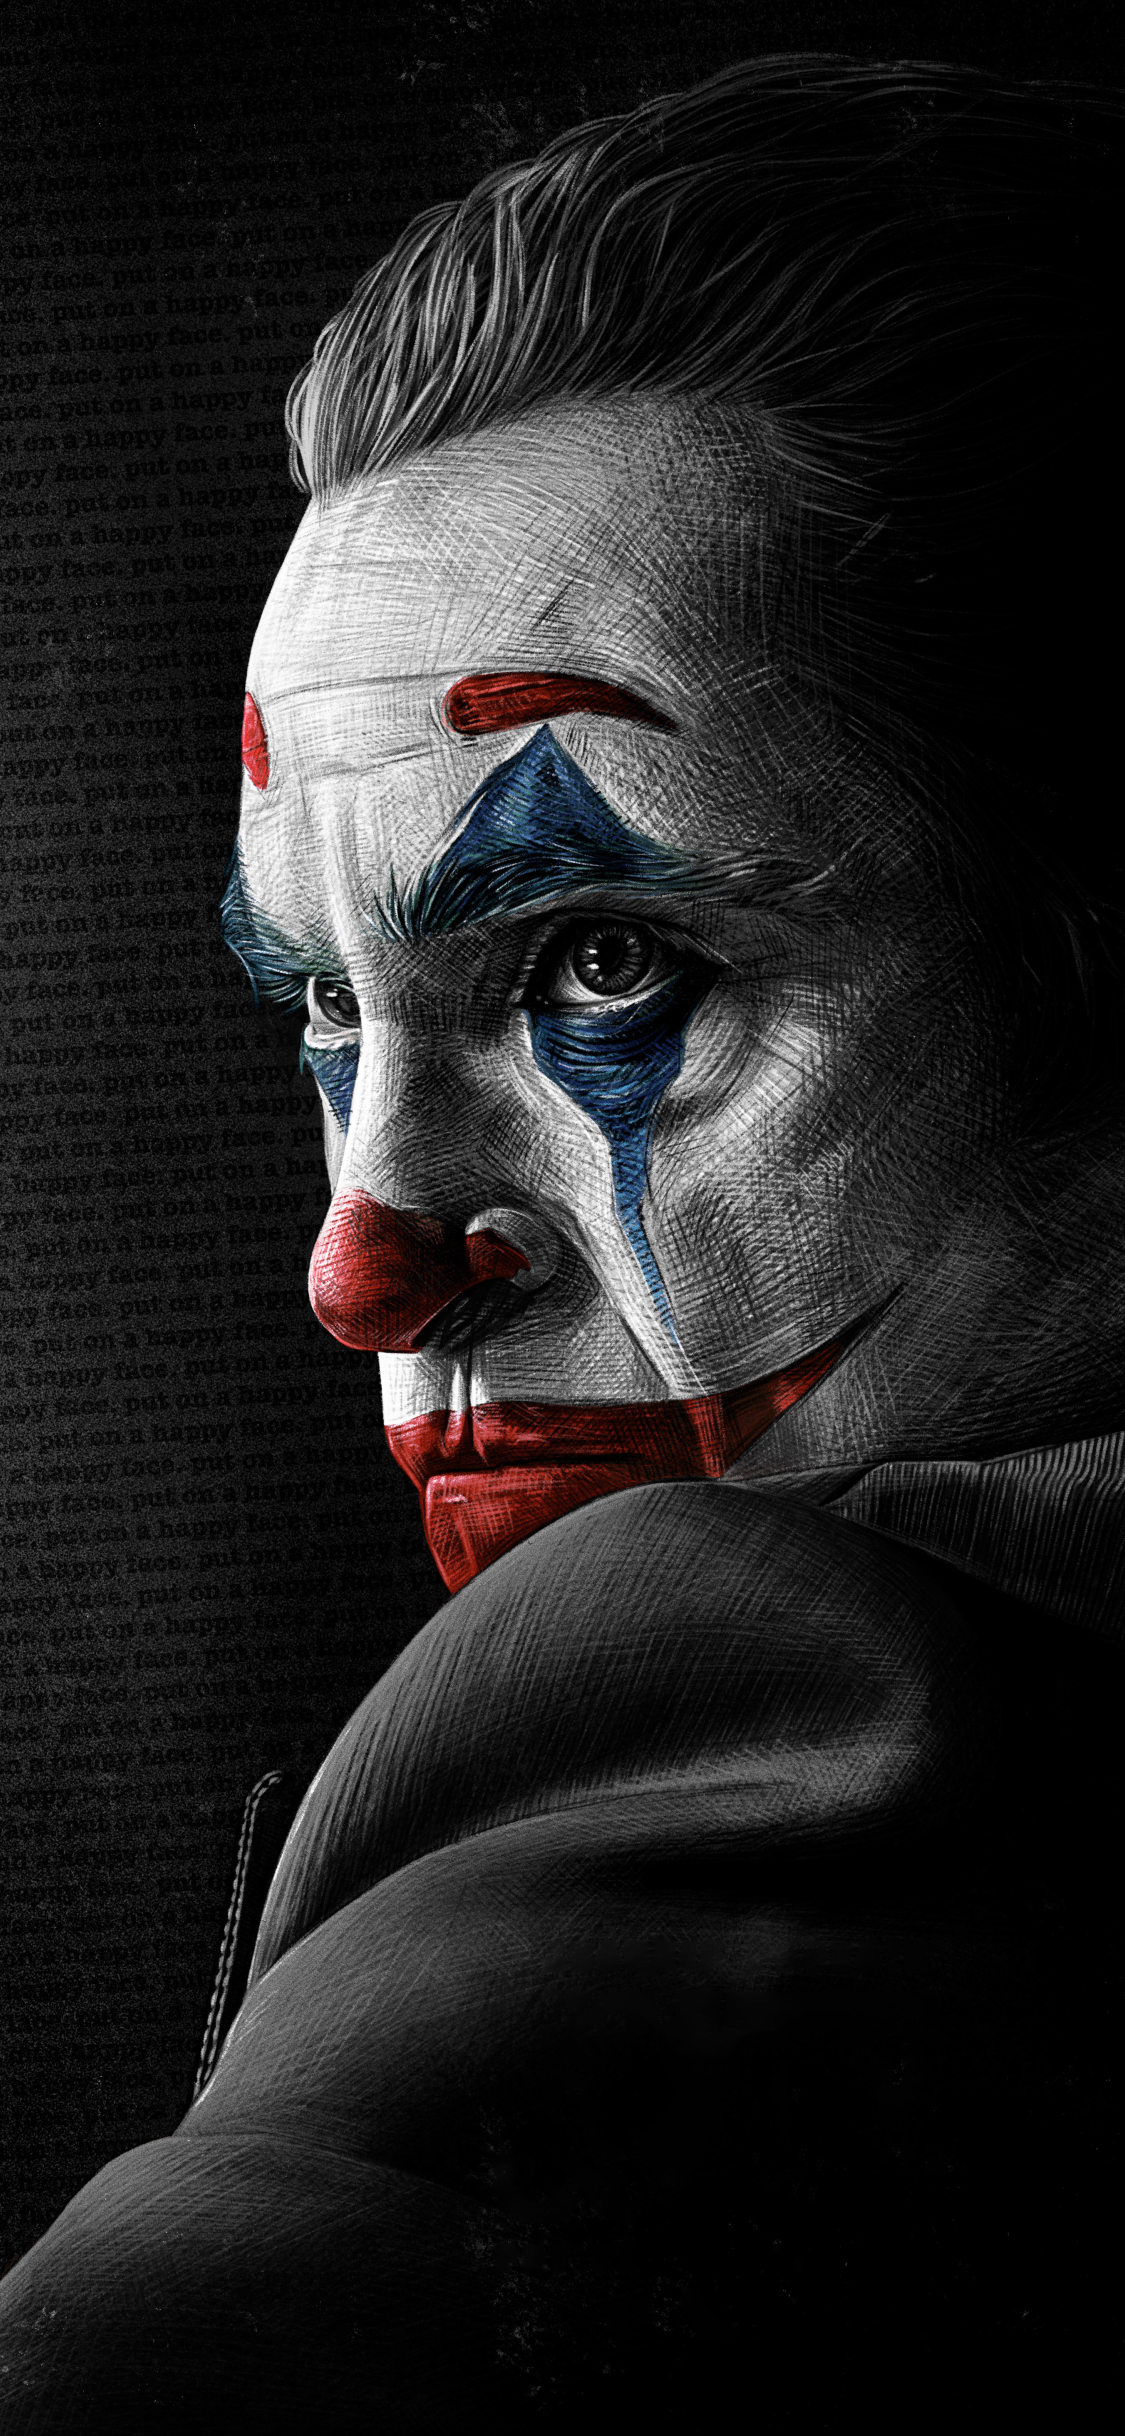 1125x2436 4k Joaquin Phoenix As Joker Iphone Xs Iphone 10